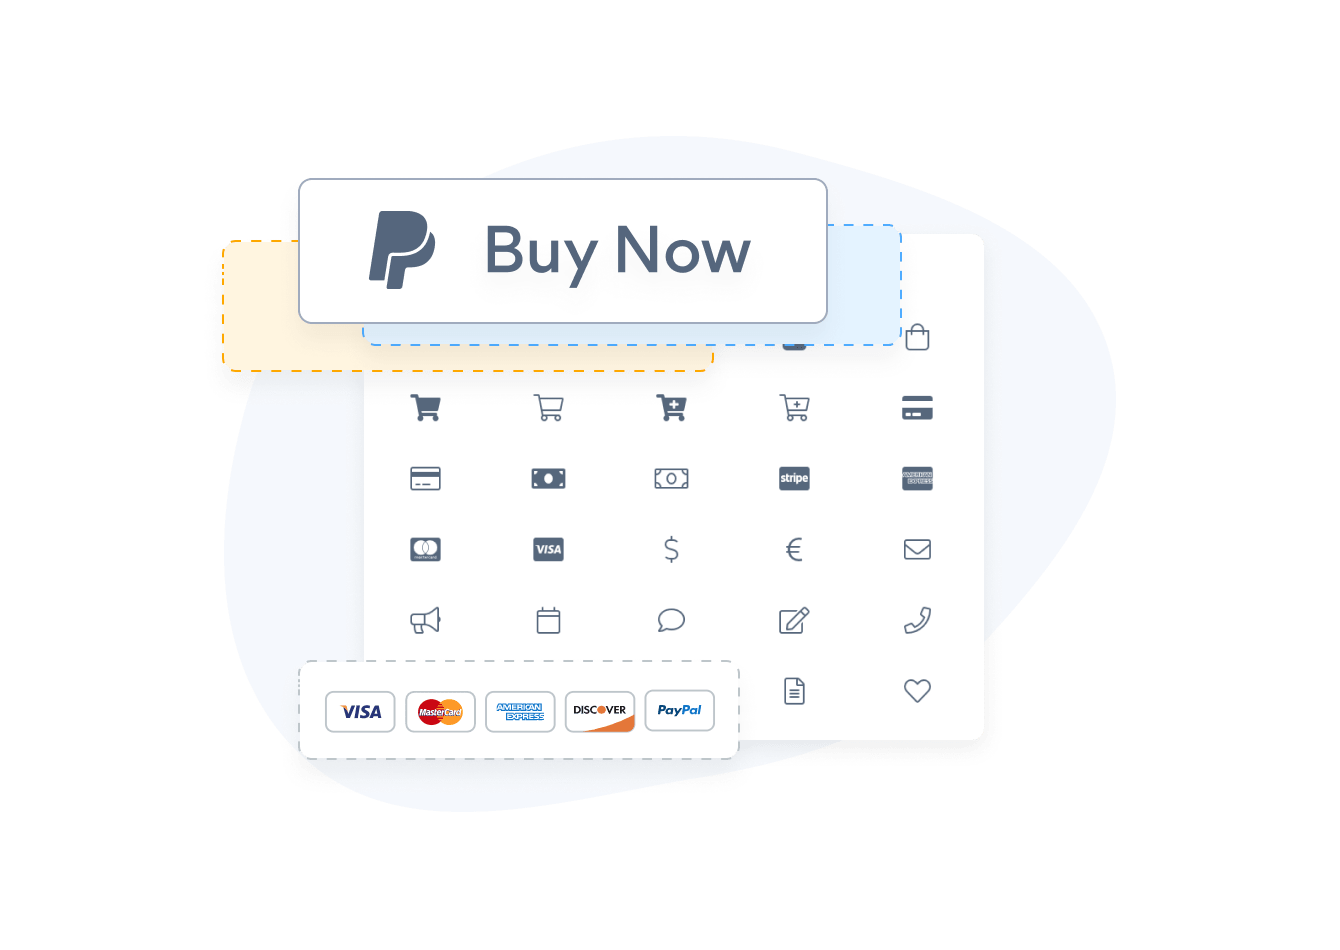 Custom PayPal Button with different icons, button text and credit card images.